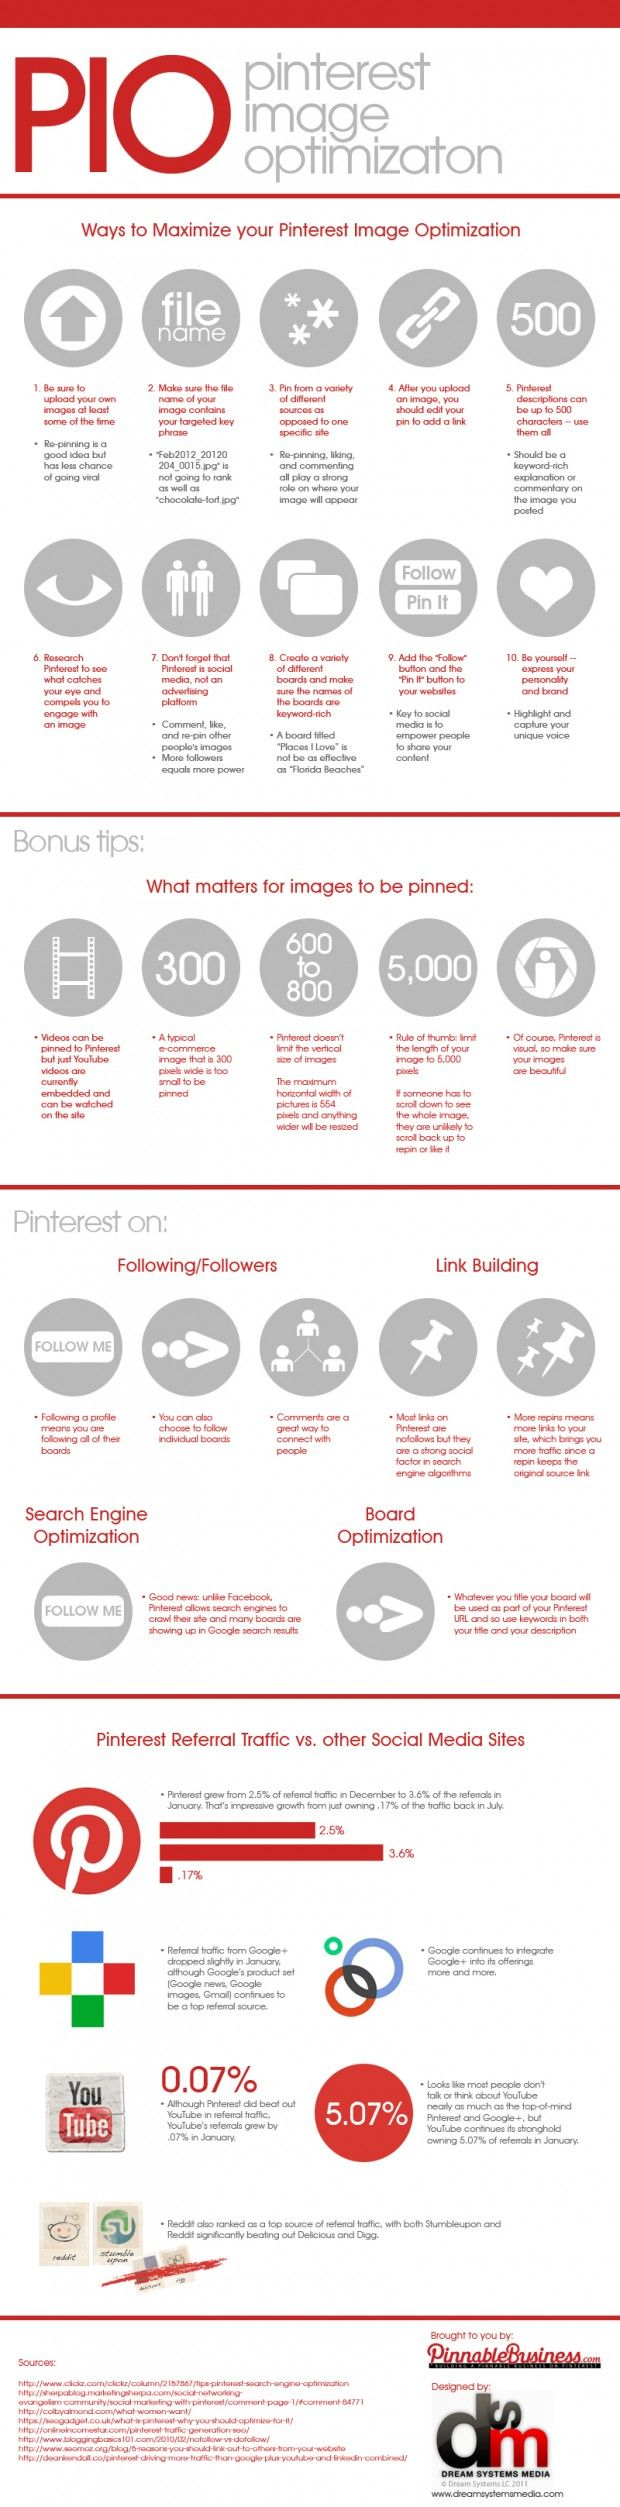 Another loooong infographic. Jeepers, people, how about some horizontal art?